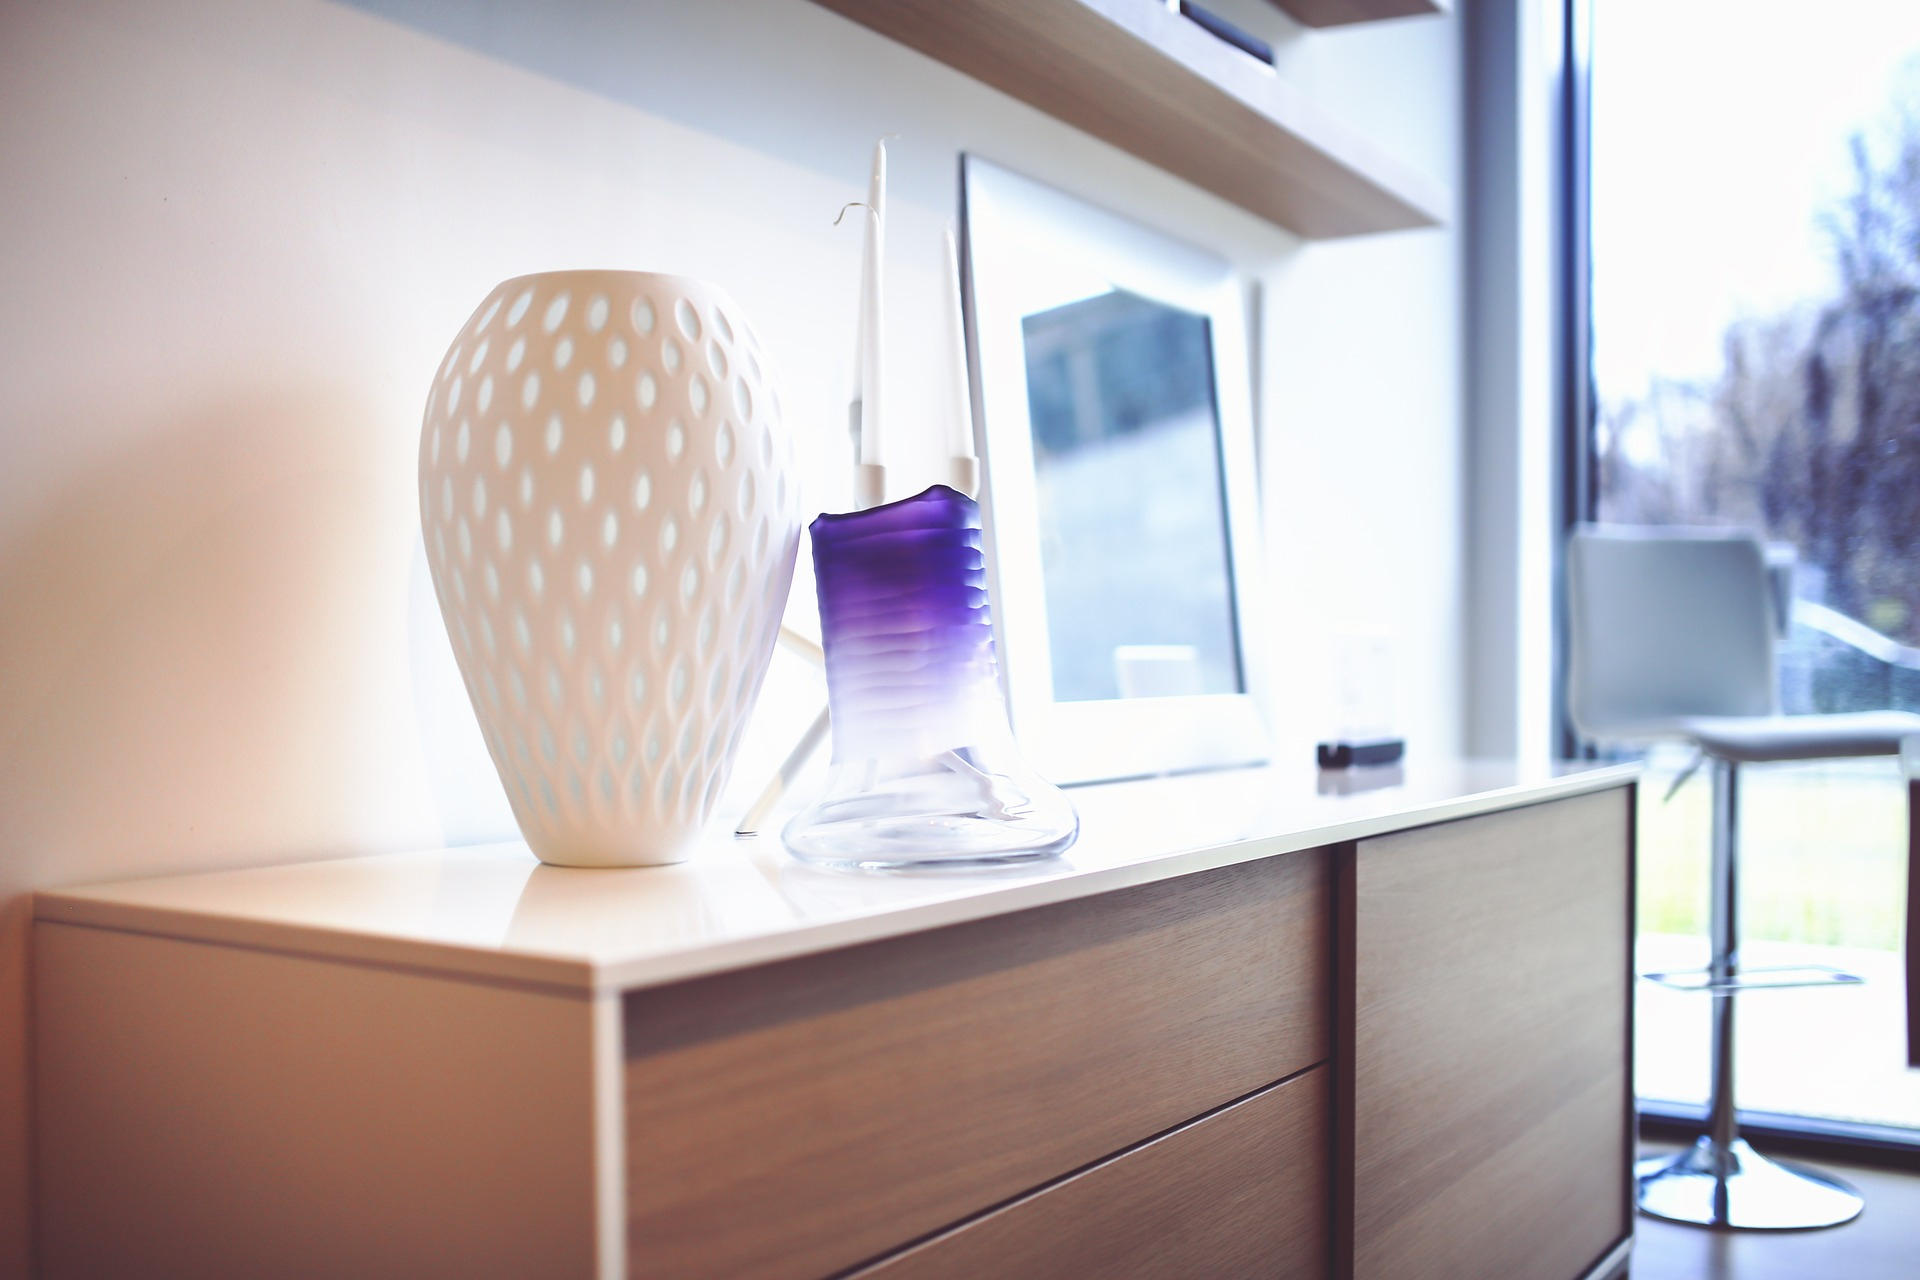 decorative vases in an apartment